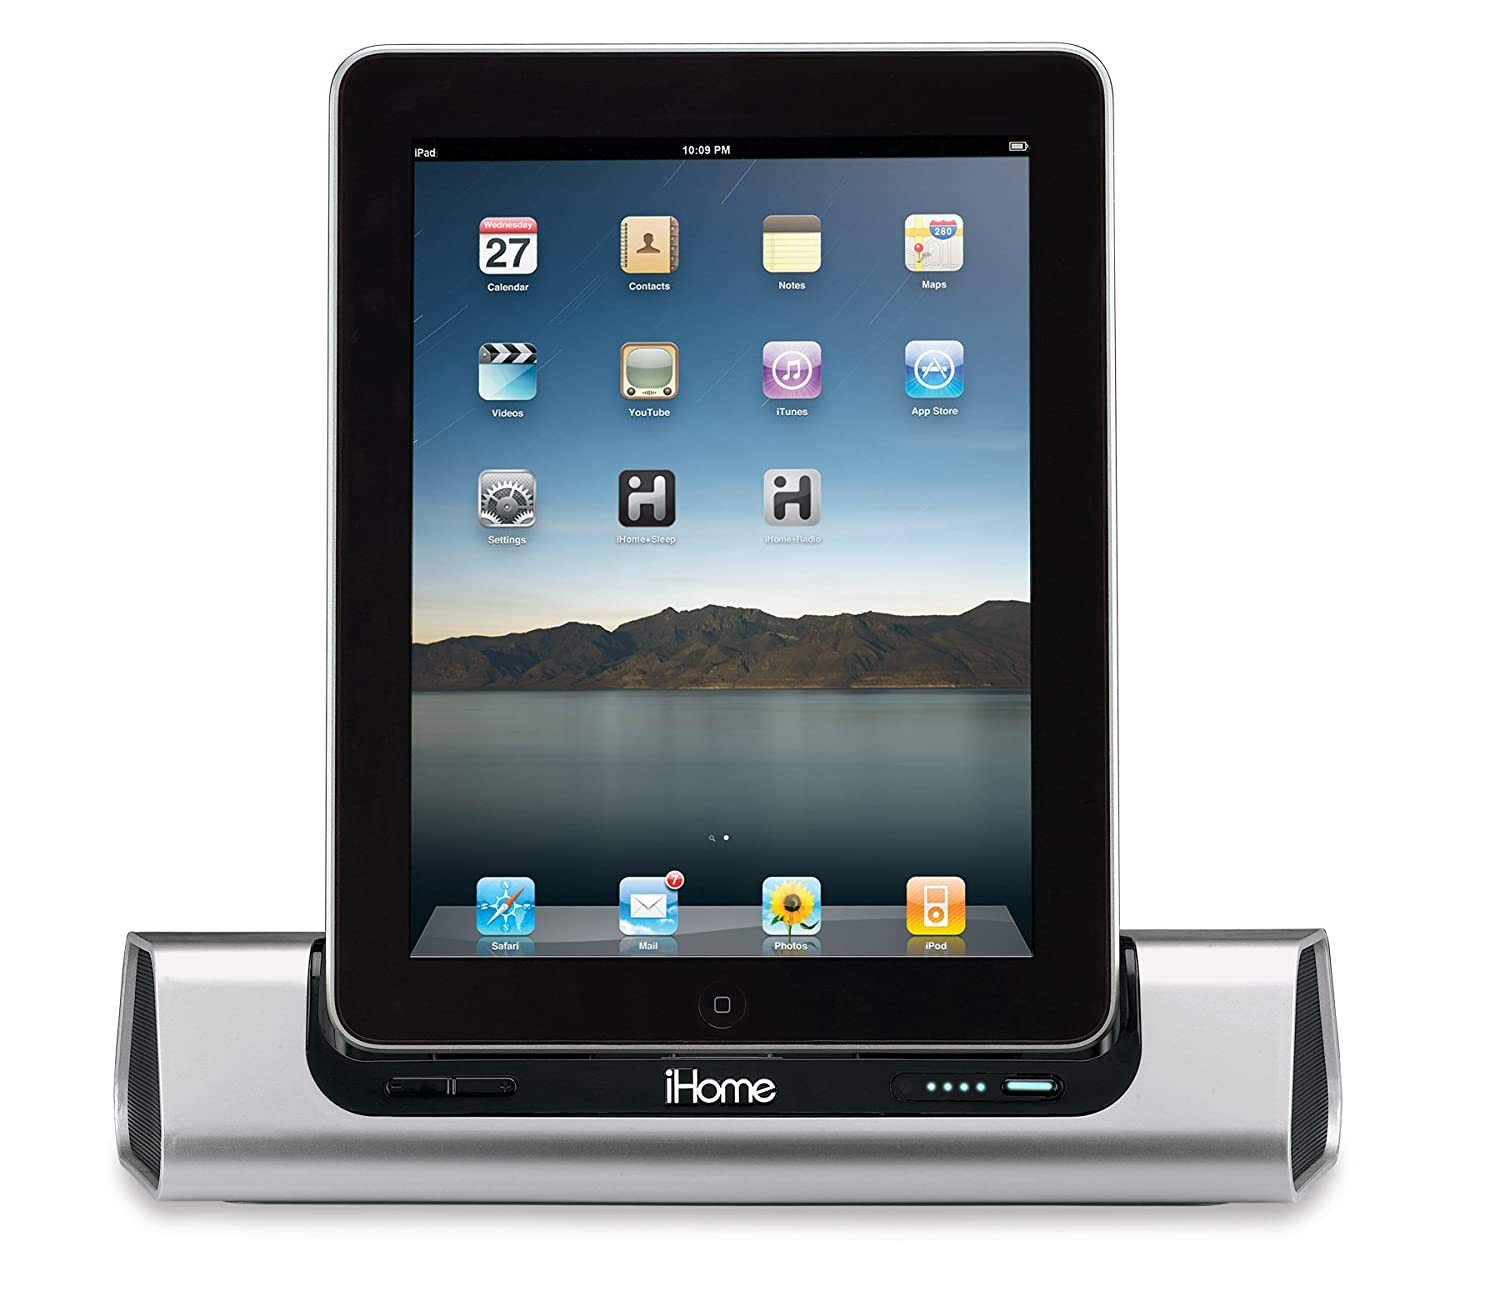 Ihome Wireless Speakers For Ipad - WIRE Center •